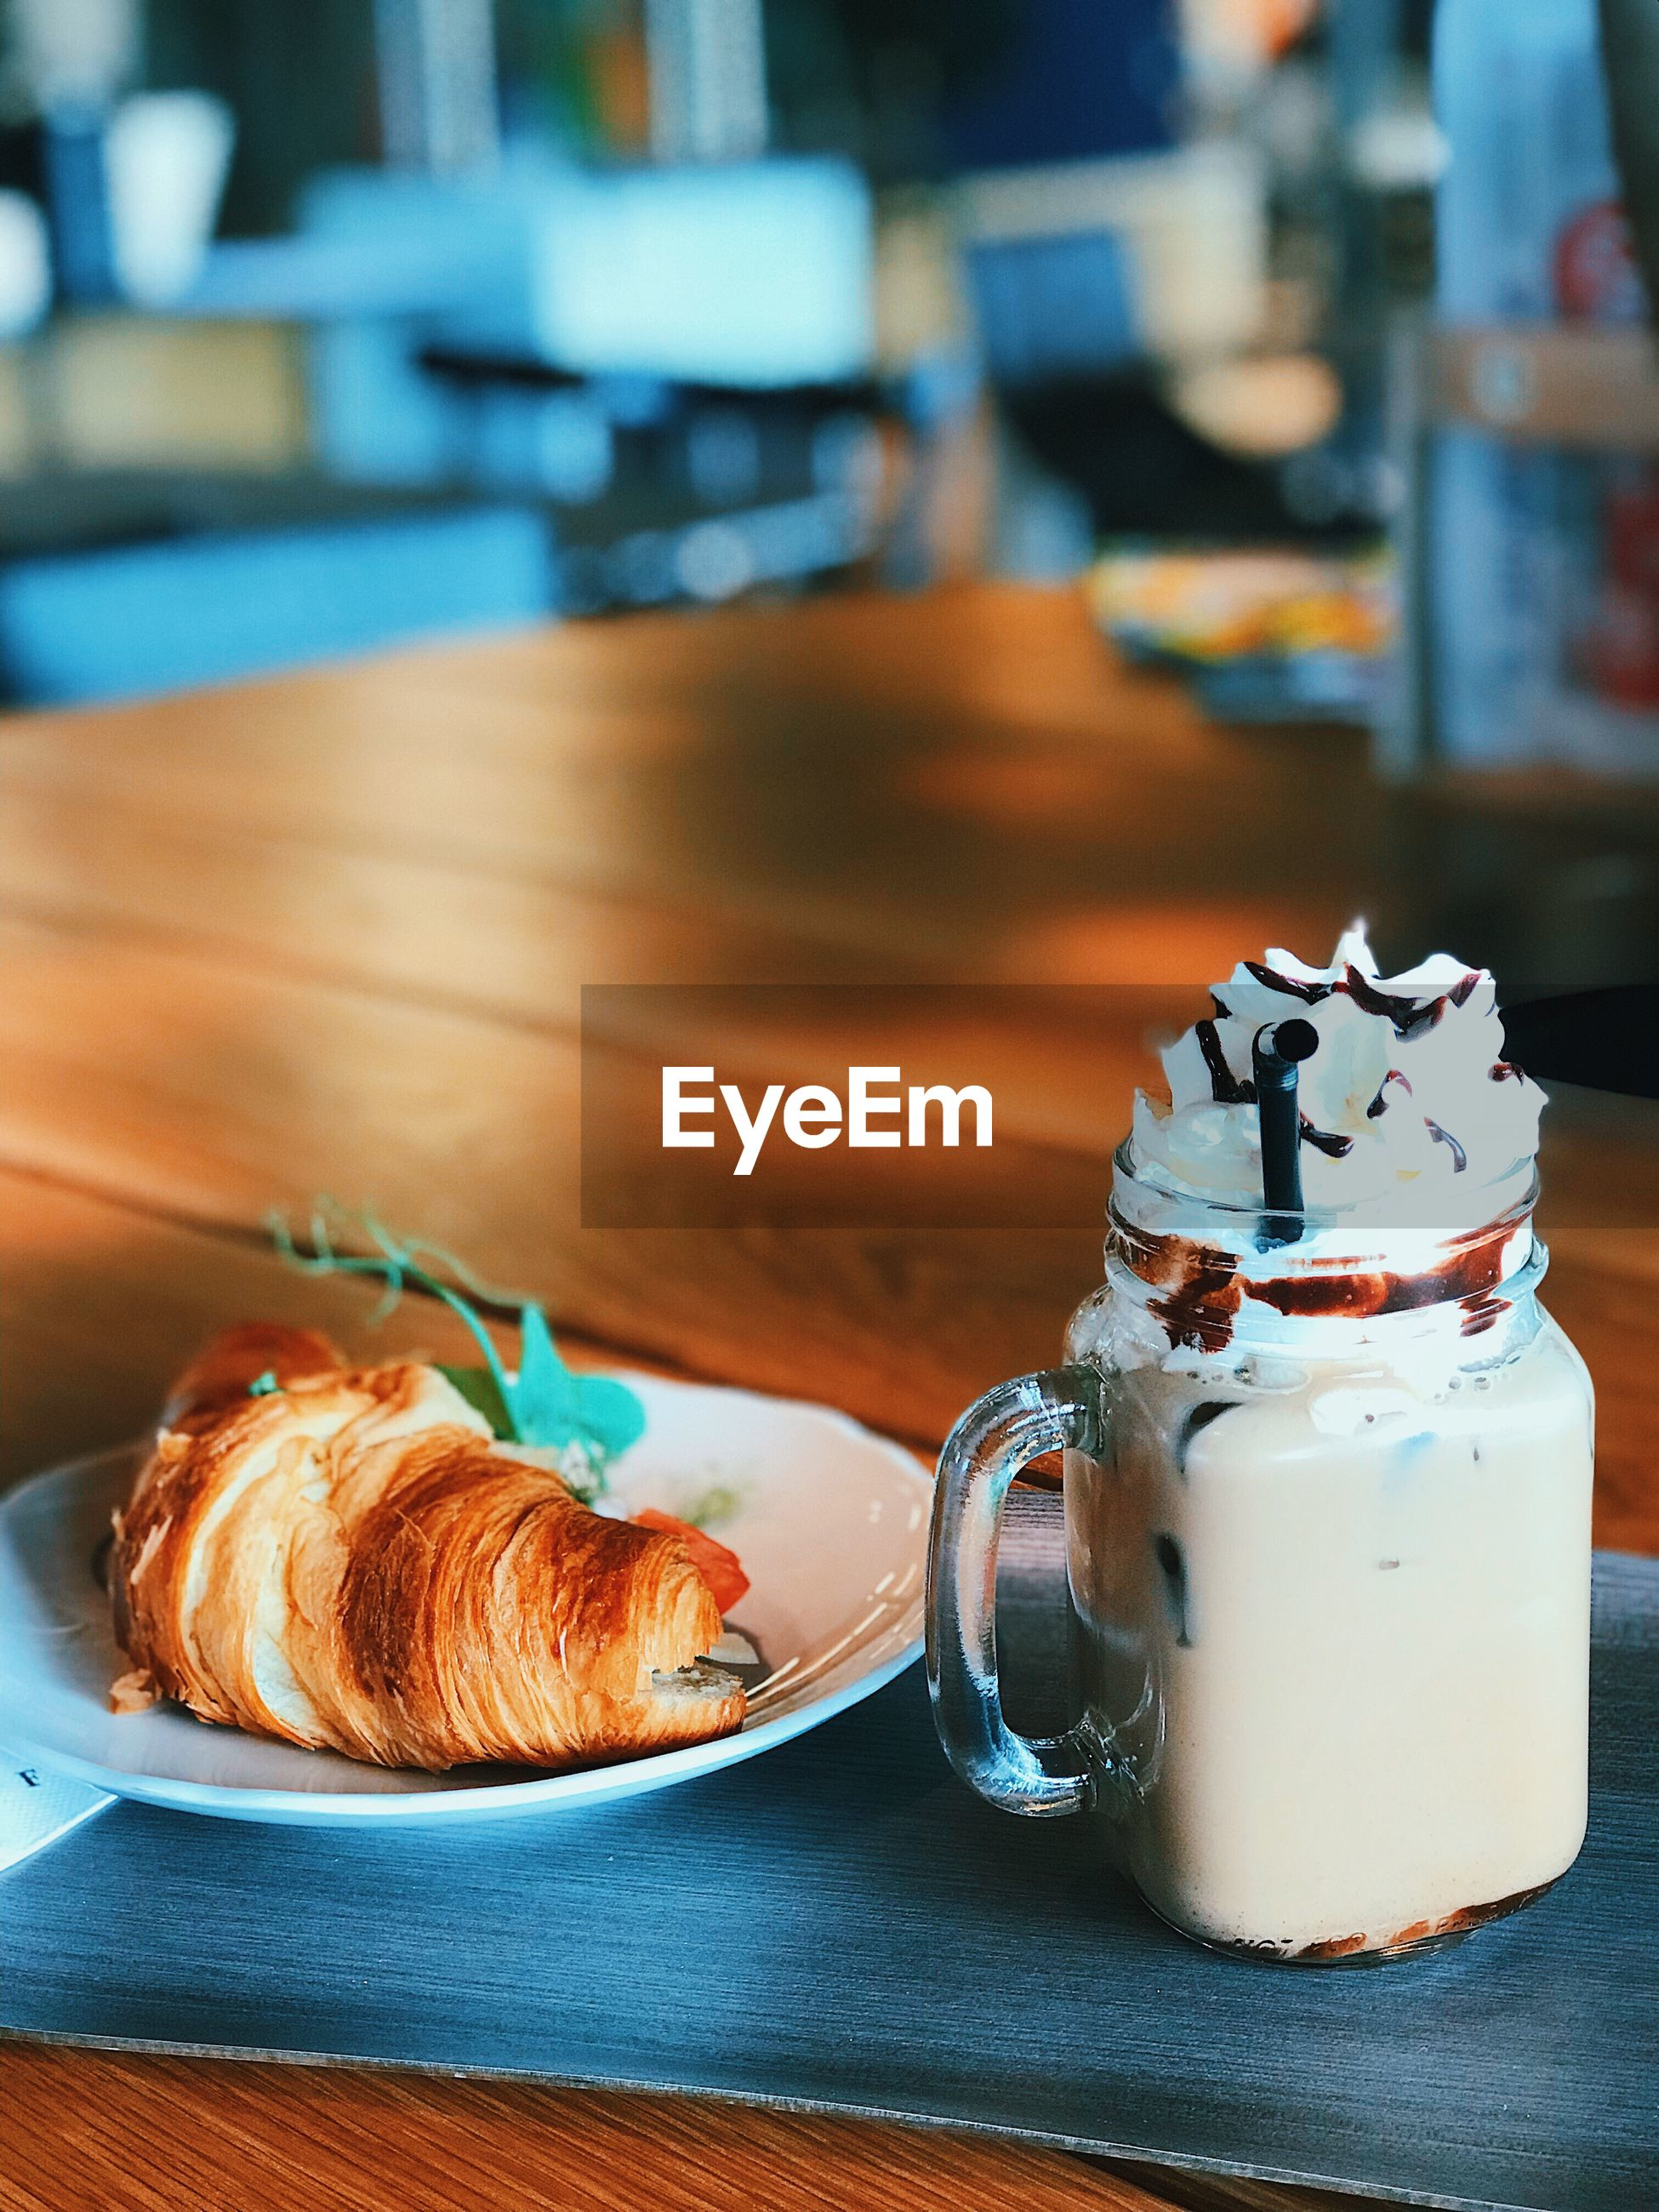 Close-up of croissant with iced coffee served on table in restaurant